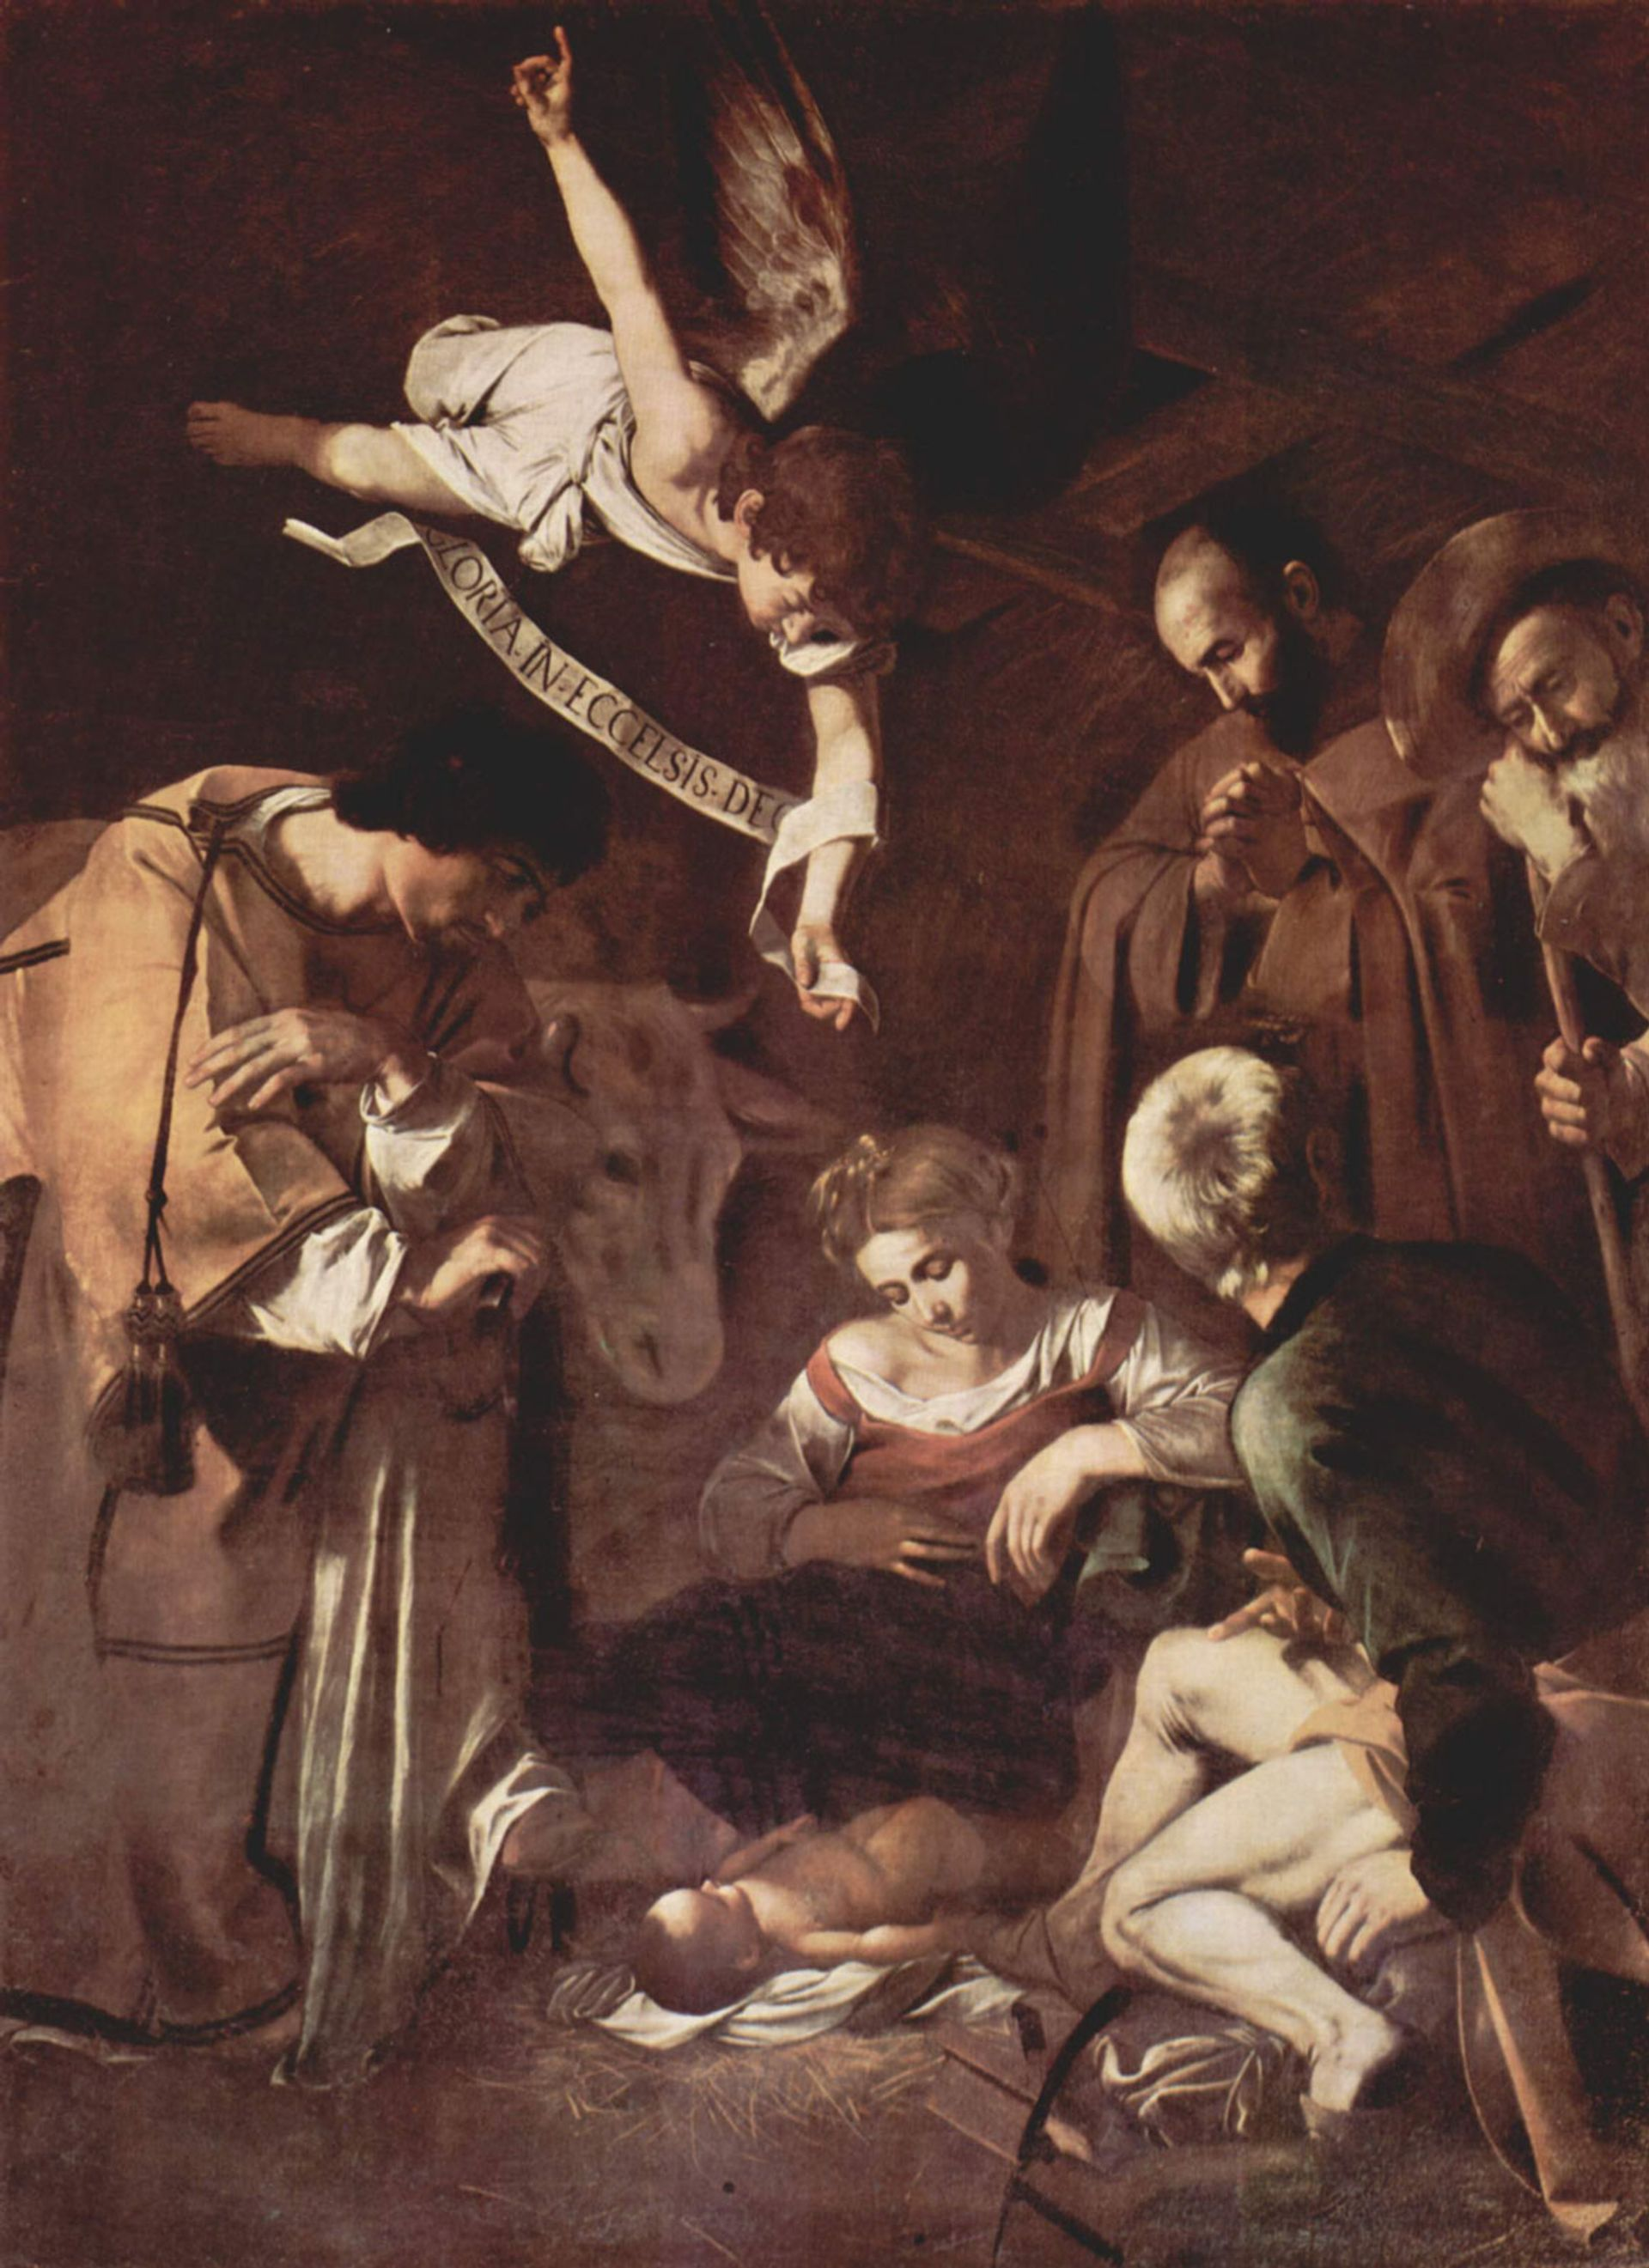 Caravaggio, Nativity with St. Francis and St. Lawrence (1600) Wikimedia Commons